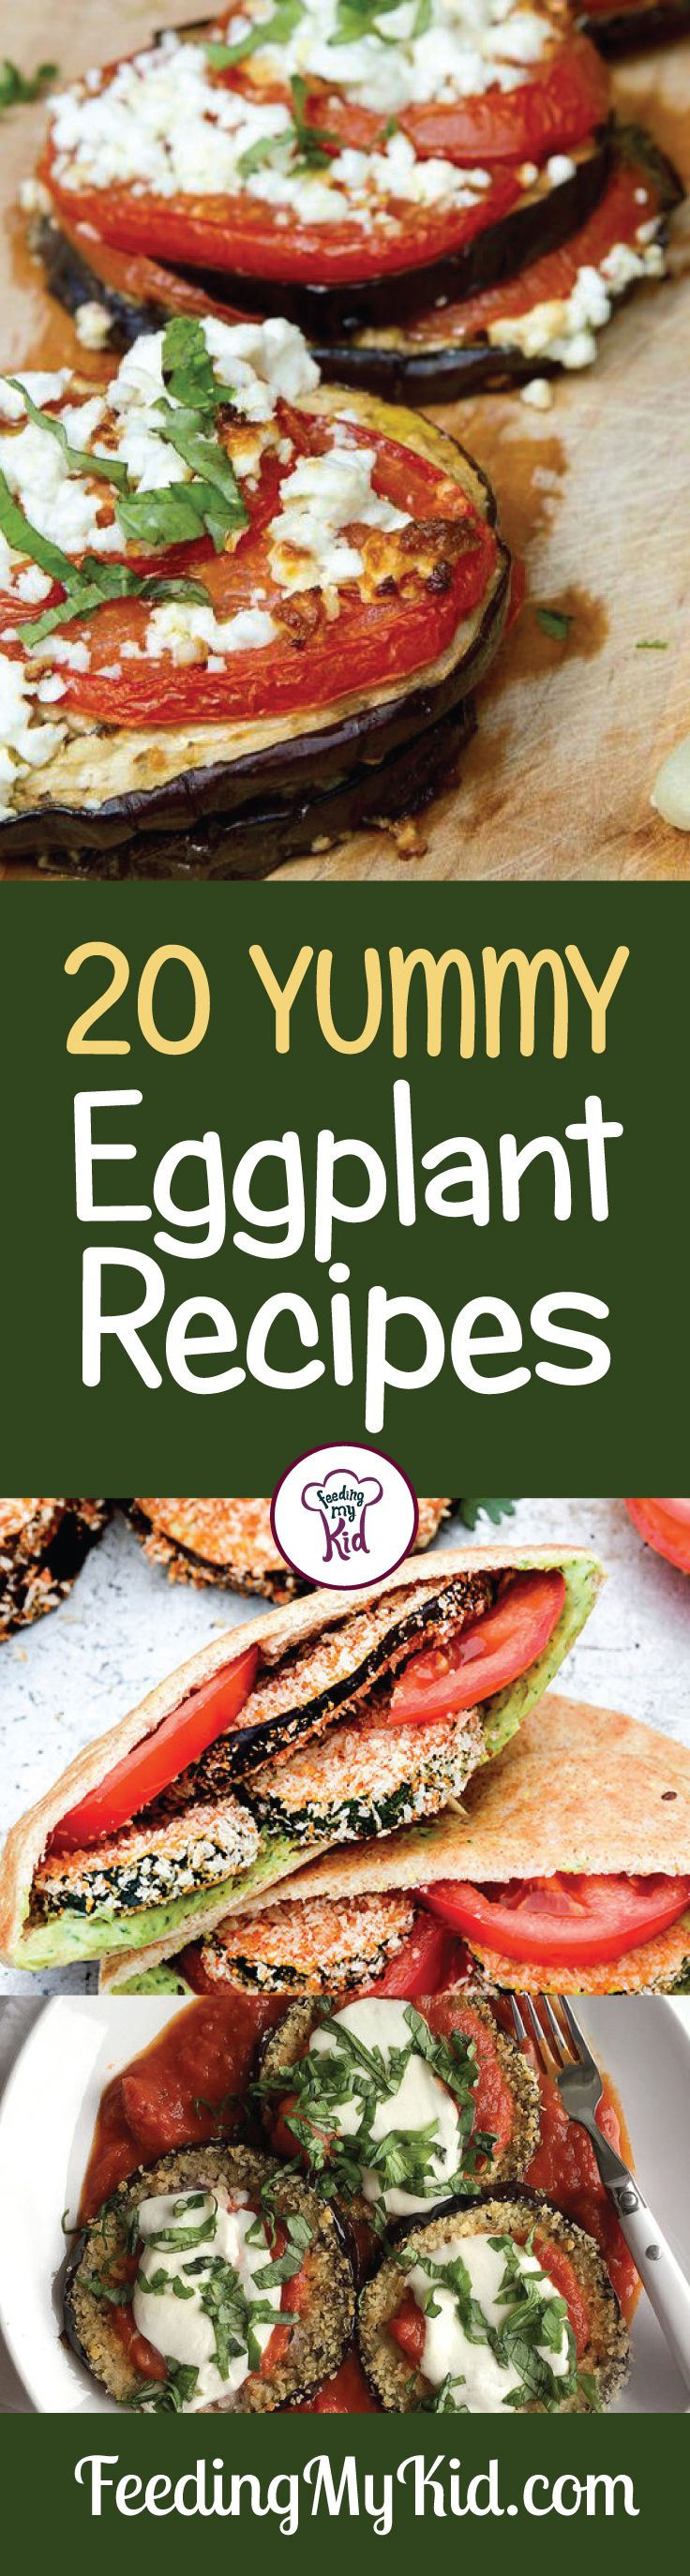 Try these amazing eggplant recipes! From eggplant lasagna to an eggplant dip…